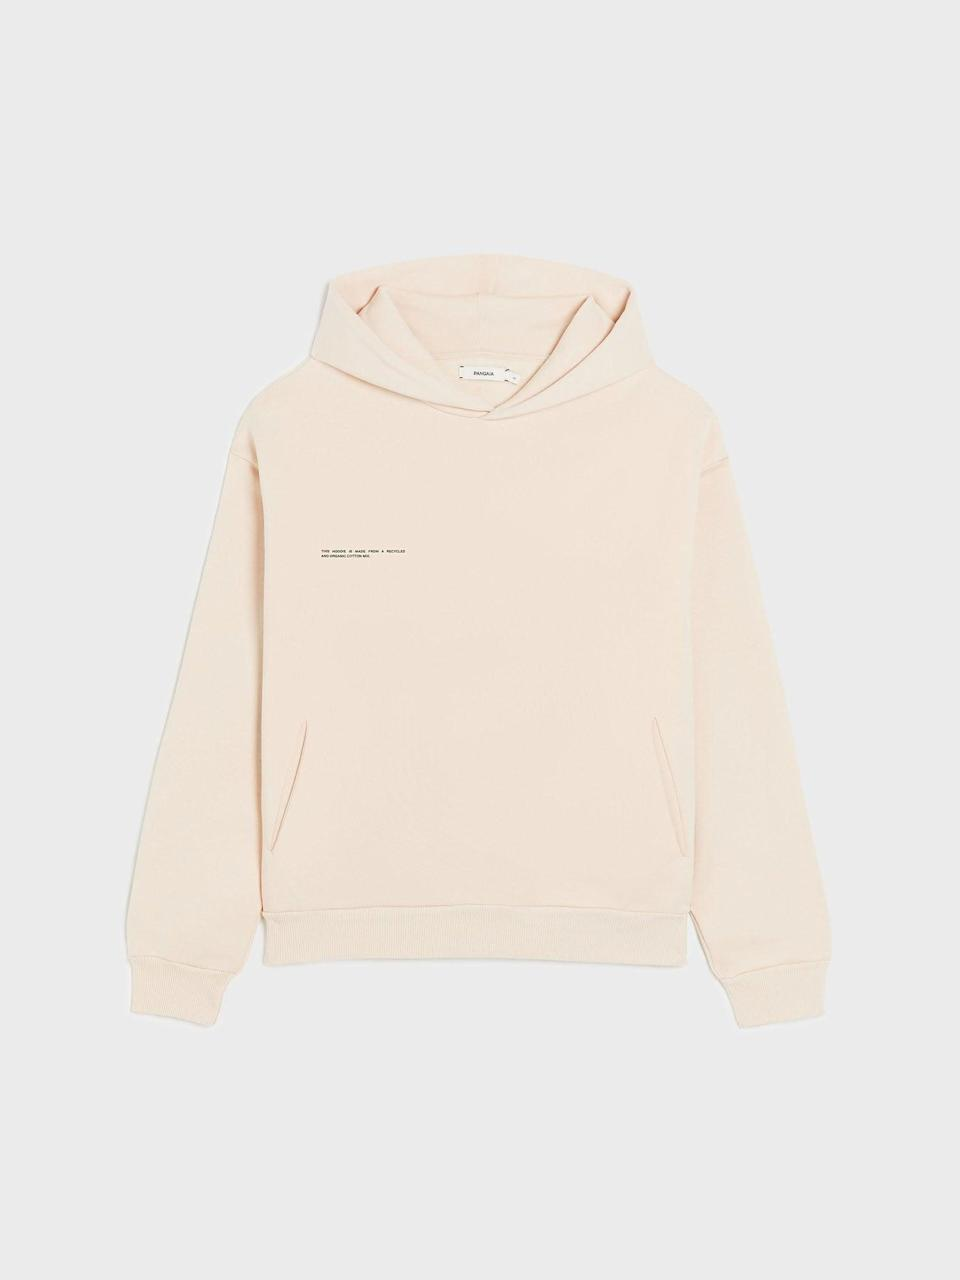 """<h2>Heavyweight Pangaia Recycled Cotton Hoodie</h2><br>""""Best quality sweatshirt! First off, it has beautiful pockets. Secondly, this sweatshirt has been keeping me so warm and cozy while I WFH. The brand is also constantly coming out with unique colors that I keep eyeing and debating if I should spend even more money on another sweatshirt."""" – <a href=""""https://www.instagram.com/bymichellecope/"""" rel=""""nofollow noopener"""" target=""""_blank"""" data-ylk=""""slk:Michelle Cope"""" class=""""link rapid-noclick-resp""""><em>Michelle Cope</em></a><em>, Design Assistant</em><br><br><em>Shop <strong><a href=""""https://thepangaia.com/collections/women-hoodies"""" rel=""""nofollow noopener"""" target=""""_blank"""" data-ylk=""""slk:Pangaia"""" class=""""link rapid-noclick-resp"""">Pangaia</a></strong></em> <br><br><strong>Pangaia</strong> Heavyweight Recycled Cotton Hoodie, $, available at <a href=""""https://go.skimresources.com/?id=30283X879131&url=https%3A%2F%2Fthepangaia.com%2Fcollections%2Fwomen-hoodies%2Fproducts%2Fheavyweight-recycled-cotton-hoodie-sand"""" rel=""""nofollow noopener"""" target=""""_blank"""" data-ylk=""""slk:Pangaia"""" class=""""link rapid-noclick-resp"""">Pangaia</a>"""